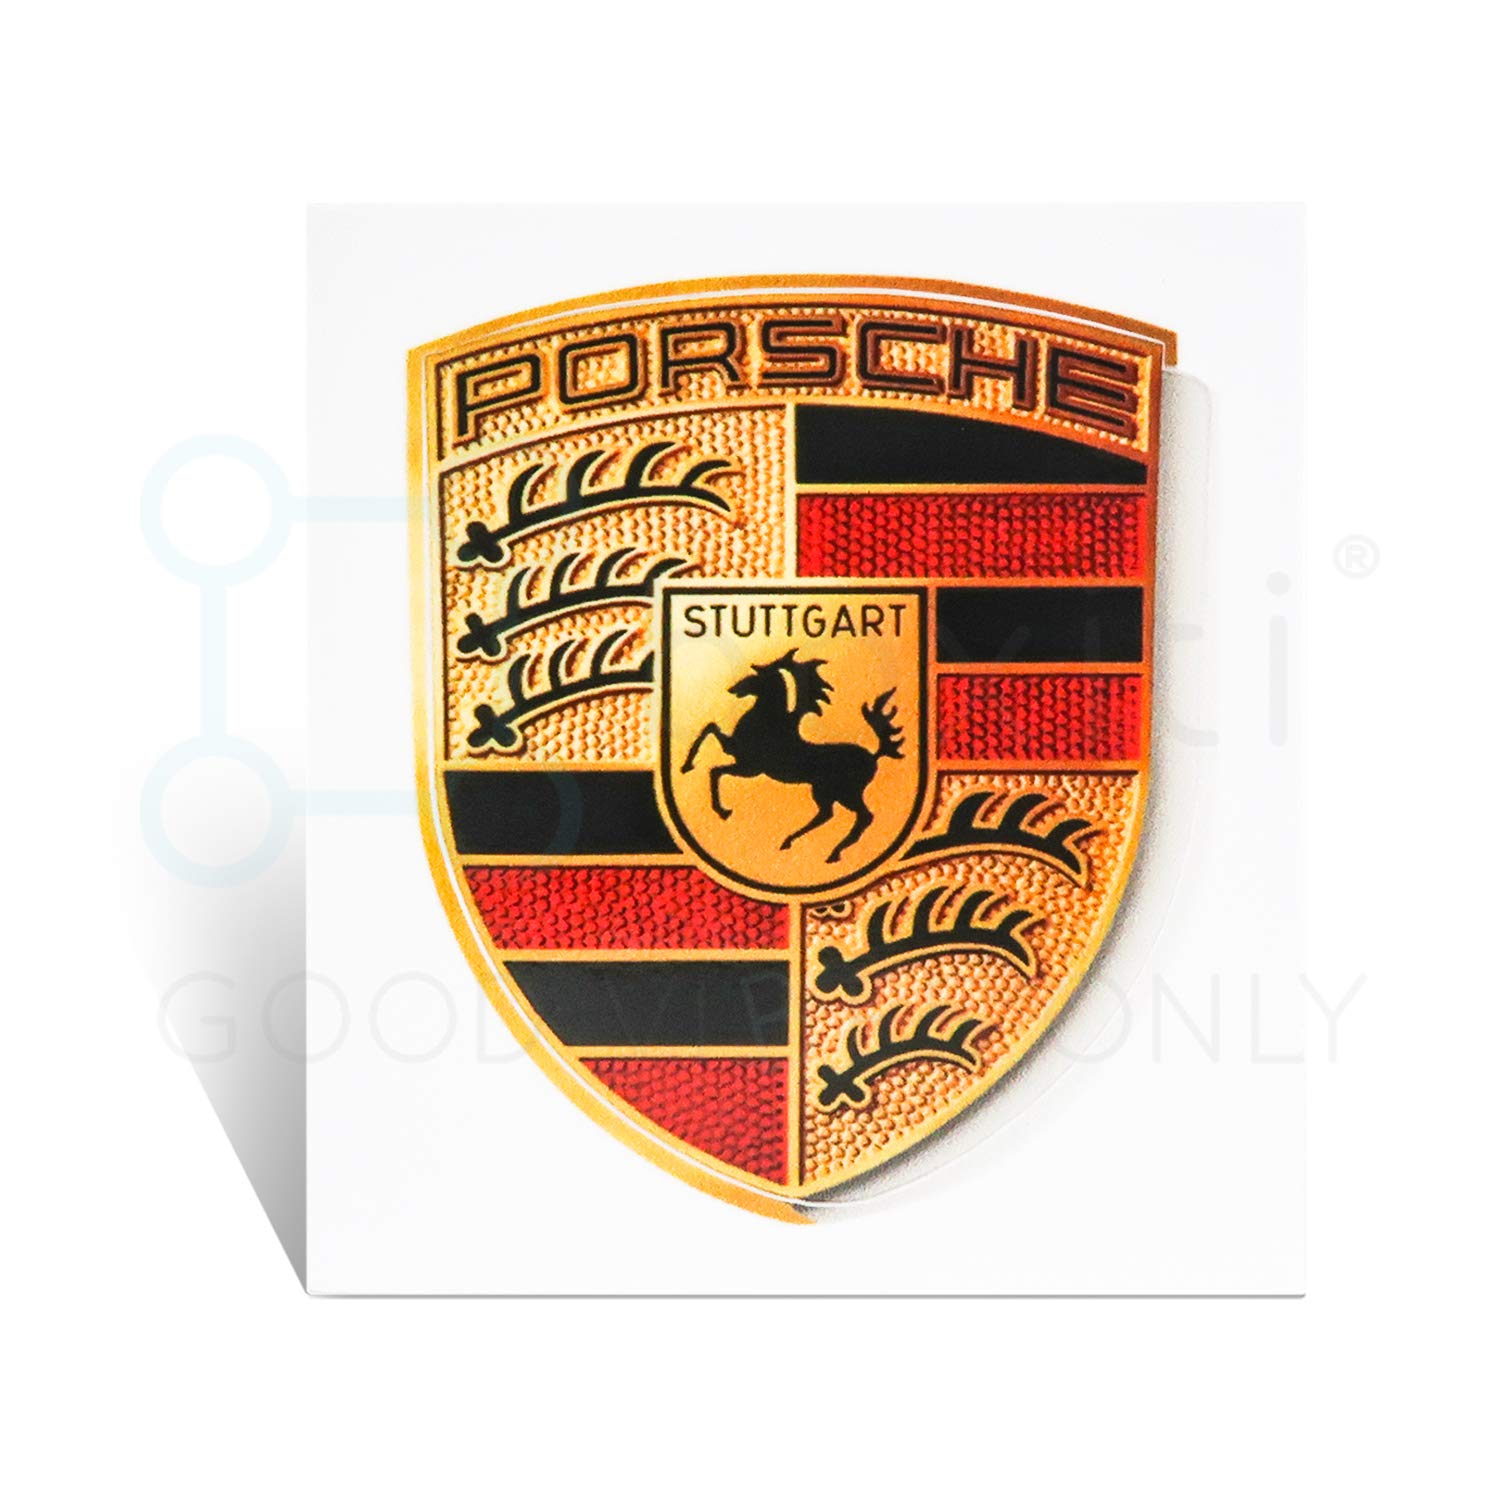 Genuine Crest sticker of Porsche Logo (65mm X 53mm) including wipe - GT3 RS 4.0/GT2 Style Porsche Emblem logo Sticker used for Wheel Center Caps and more